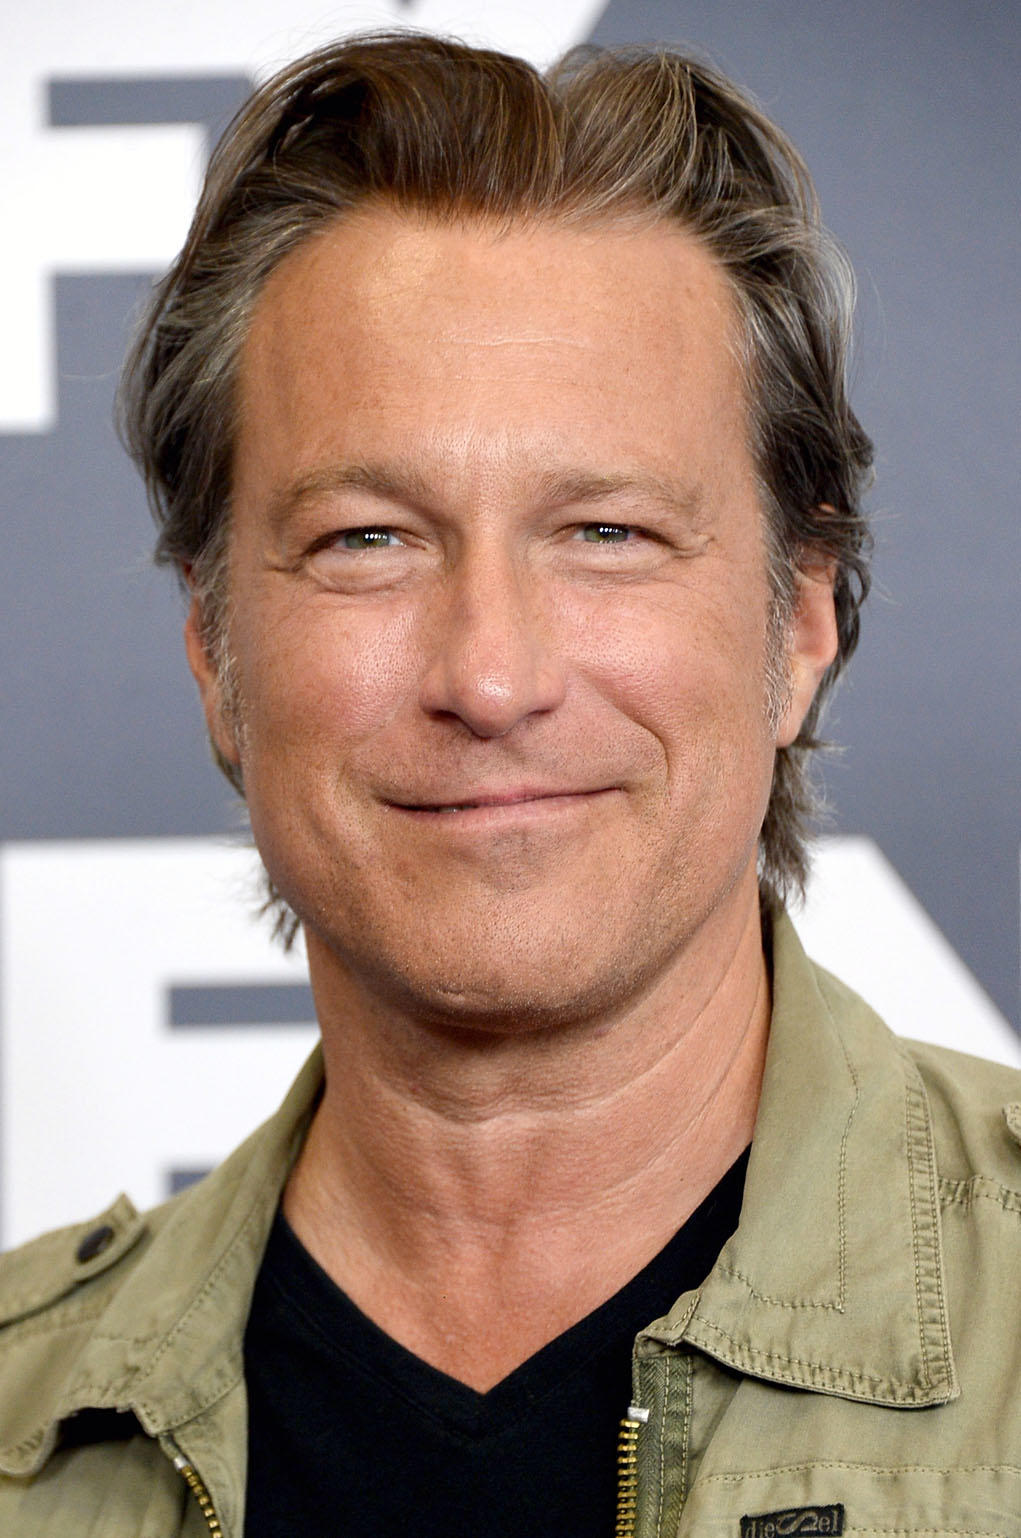 John Corbett at the FX Networks TCA 2016 Summer Press Tour in Beverly Hills, California.